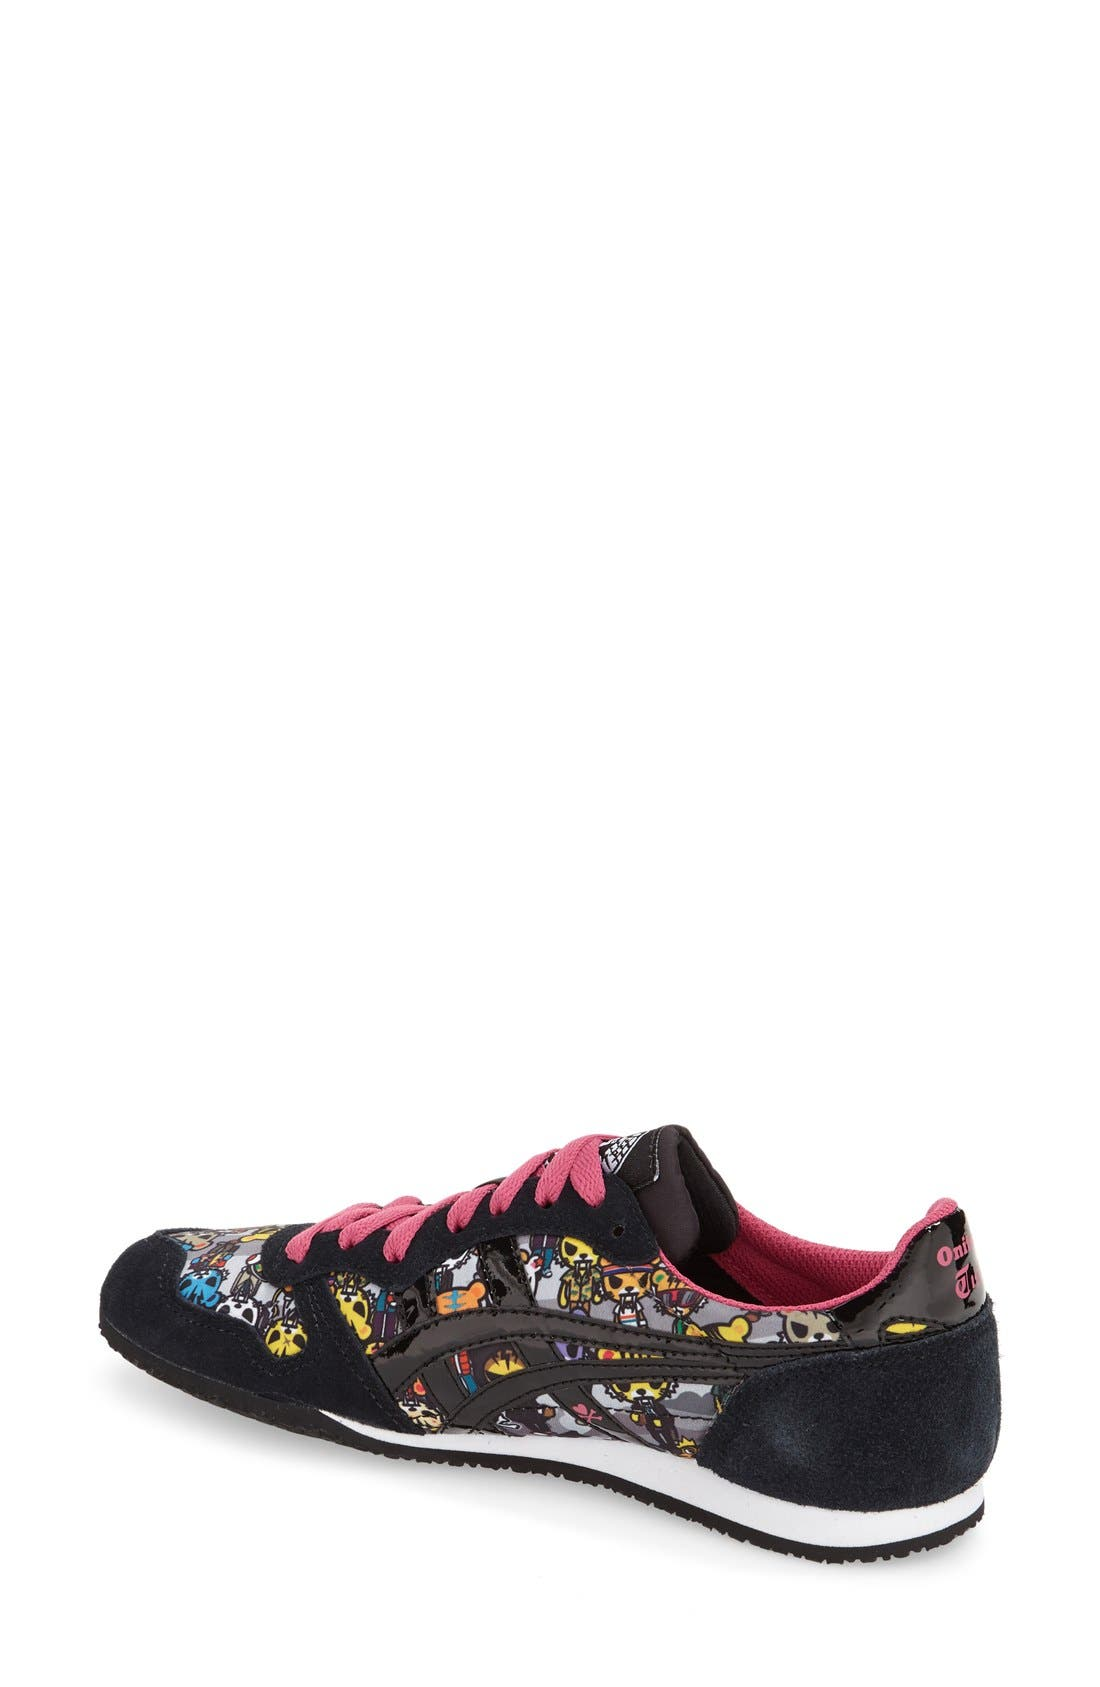 Alternate Image 2  - Onitsuka Tiger™ 'Serrano' Sneaker (Women)